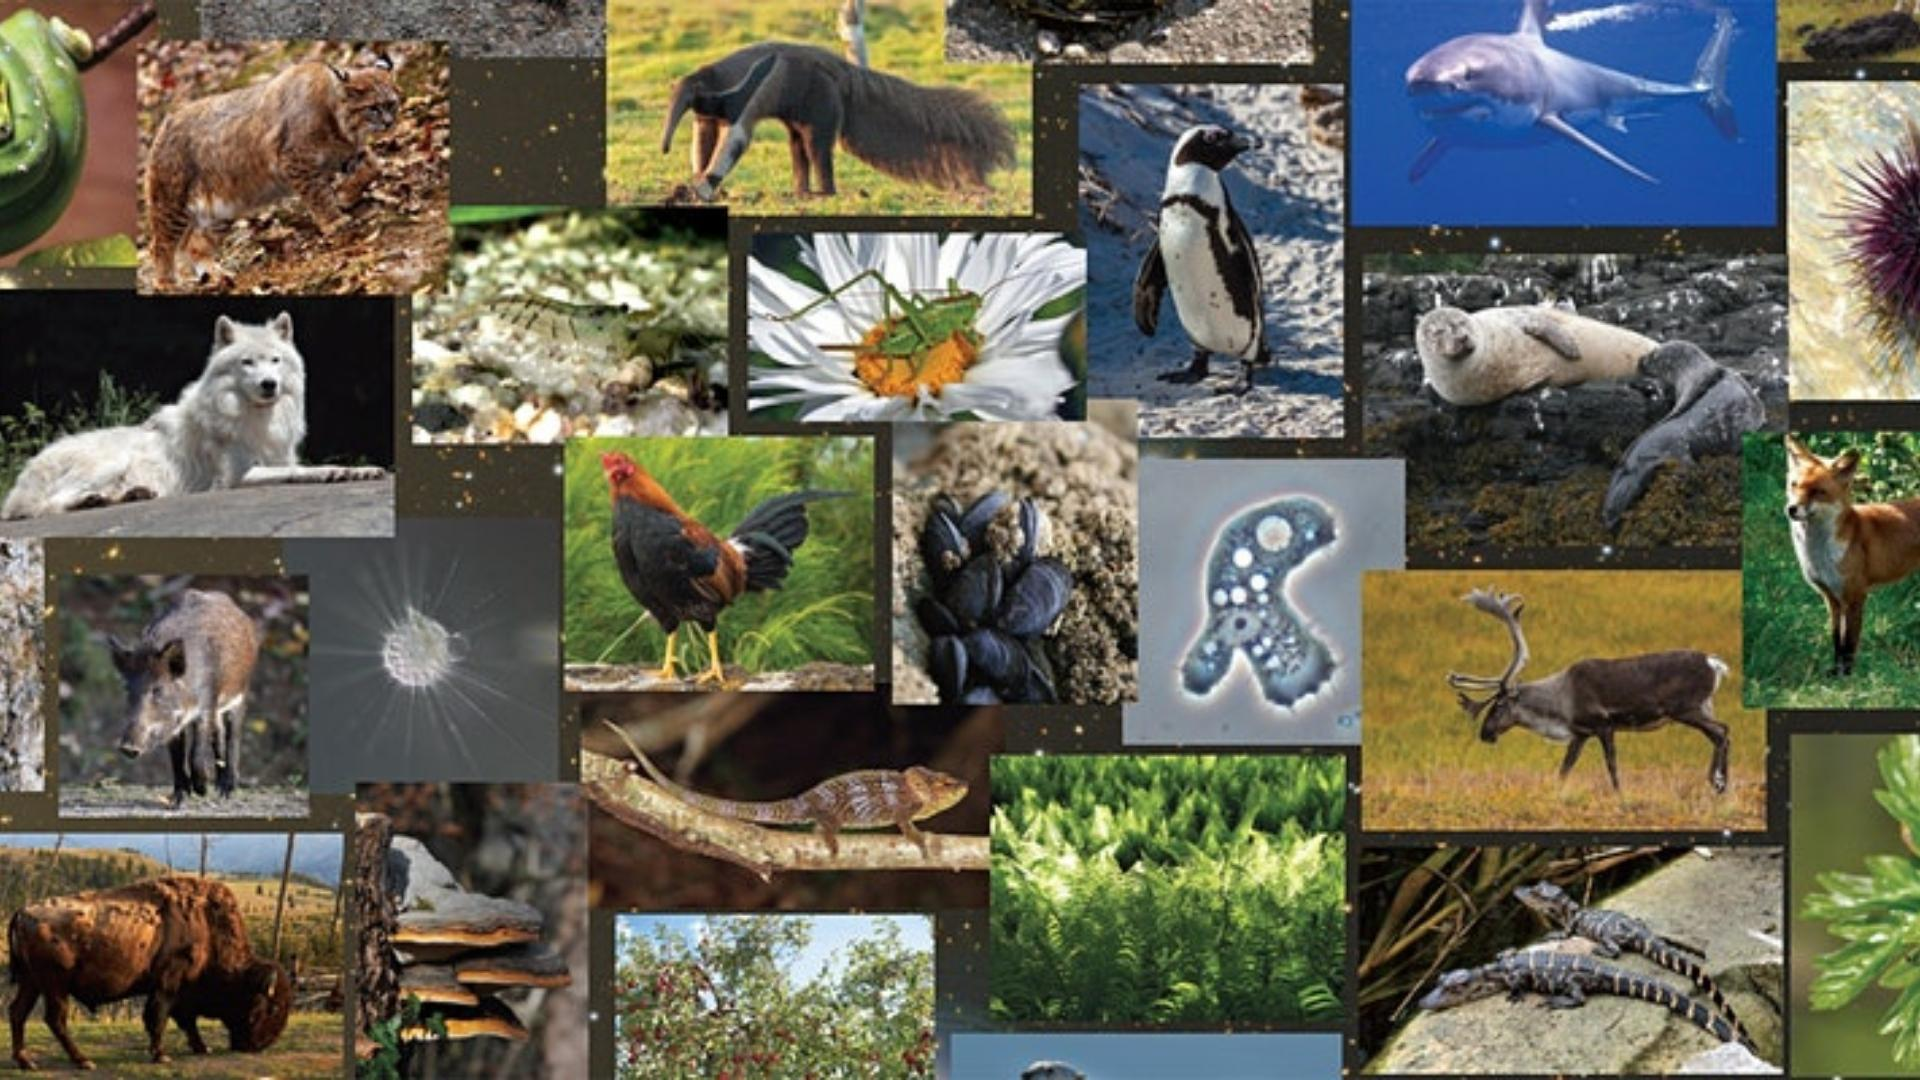 Photographs of many different living things representing the diversity of life